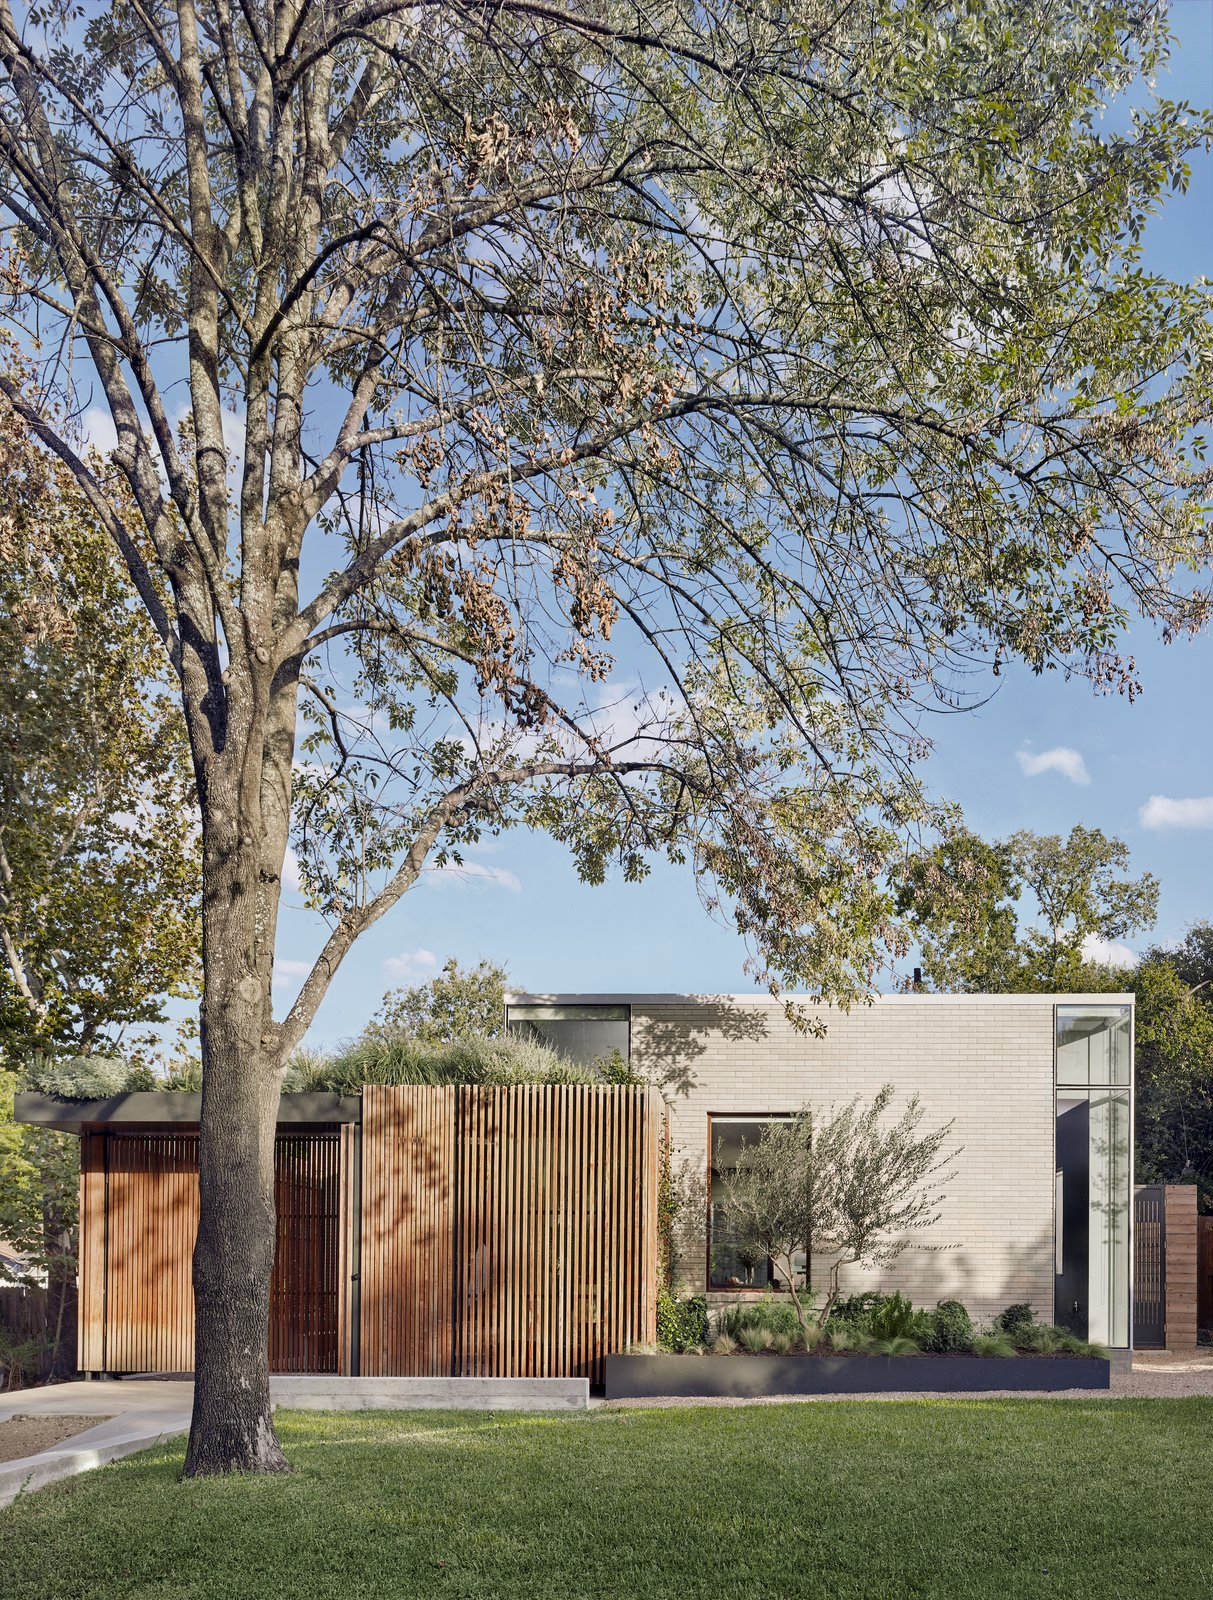 Exterior of Hemlock Ave. House by Chioco Design.